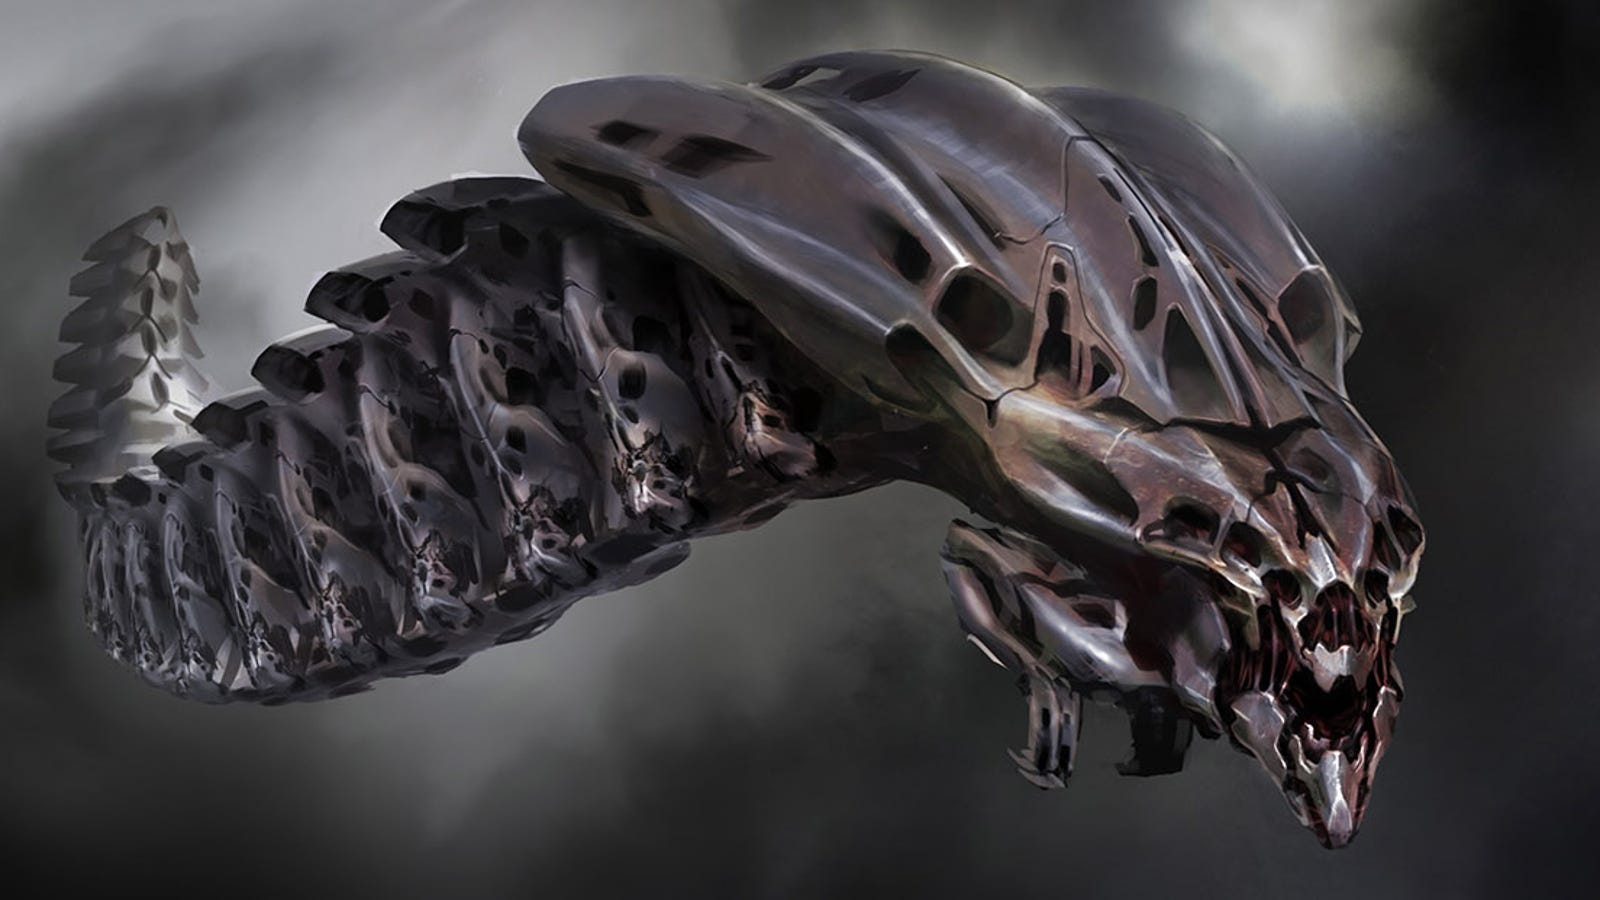 The Avengers' Leviathan warships could have been more H R